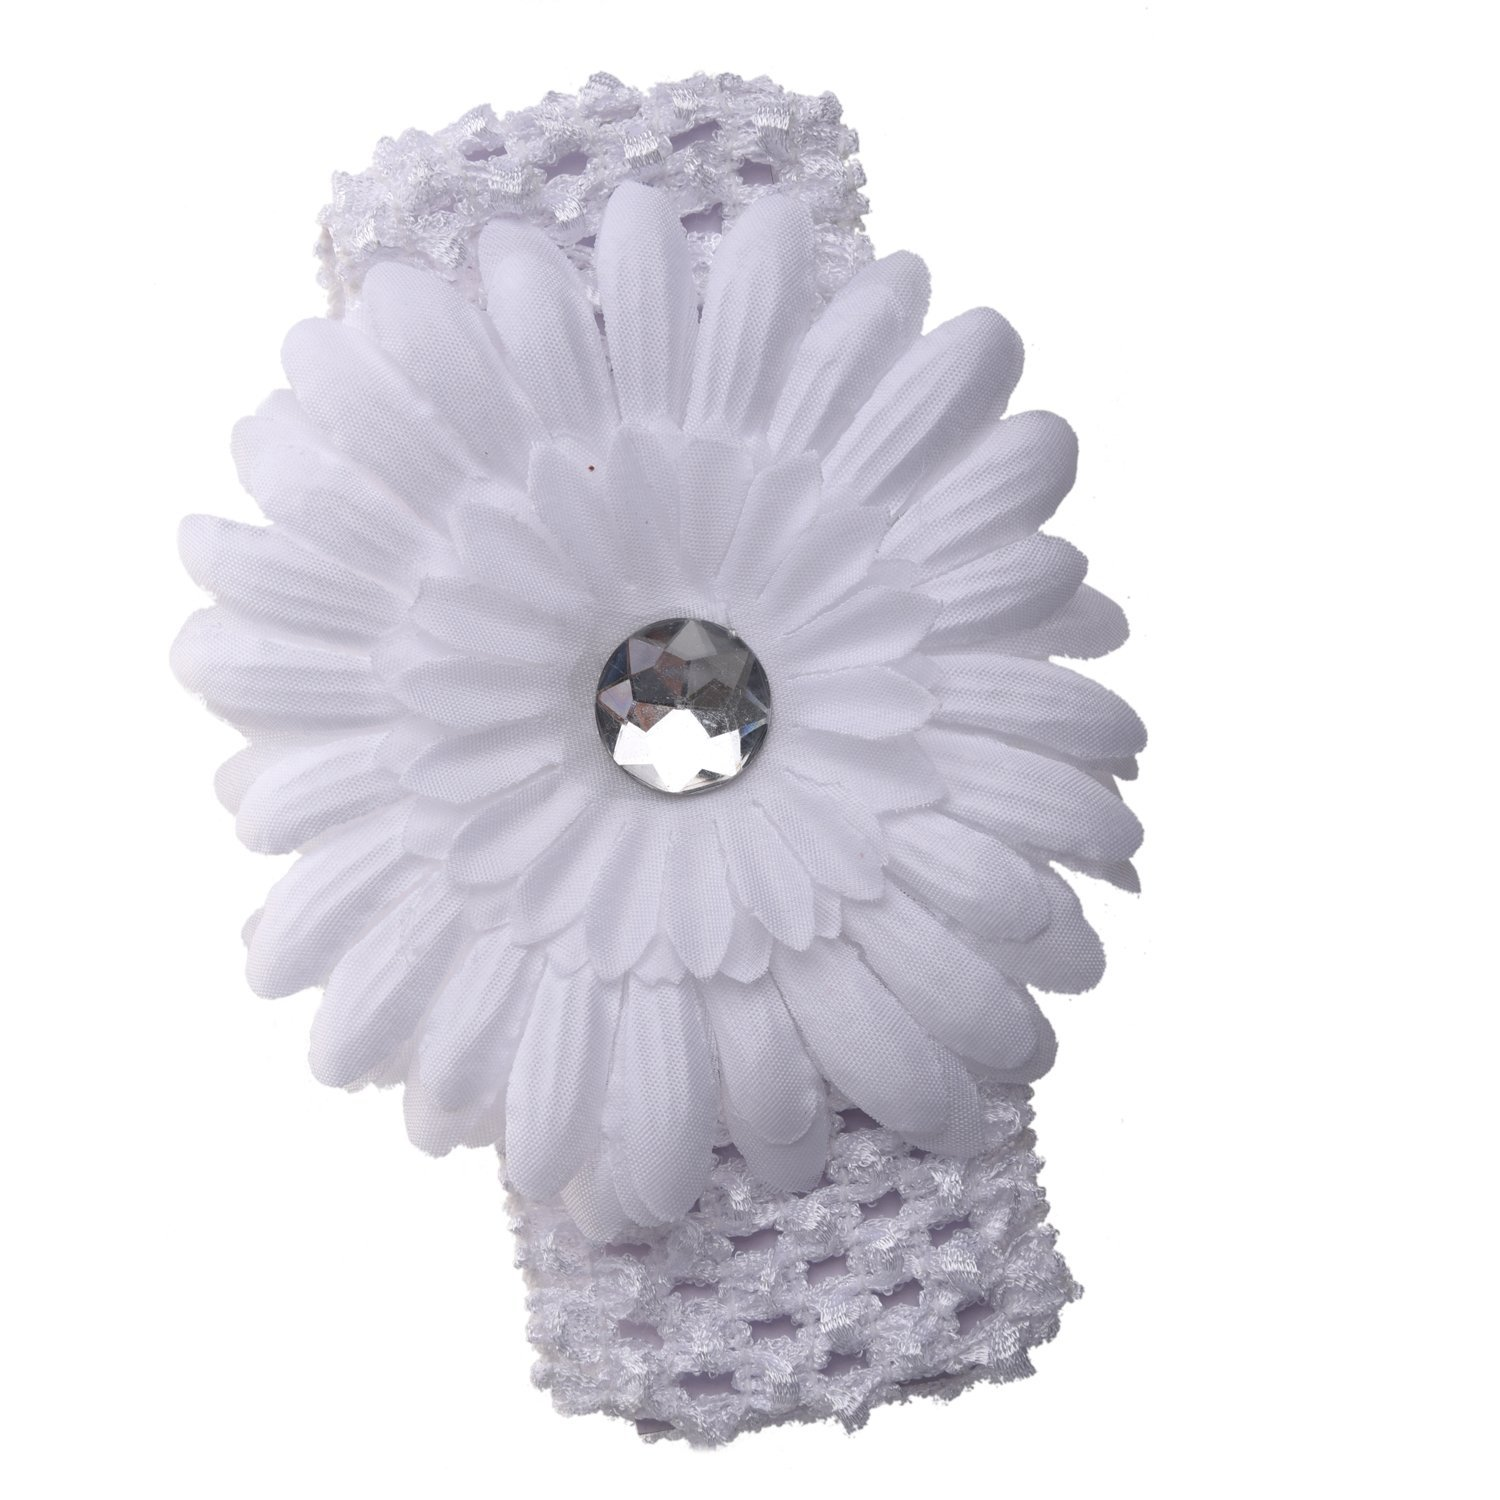 Cheap White Flower Headband Baby Find White Flower Headband Baby